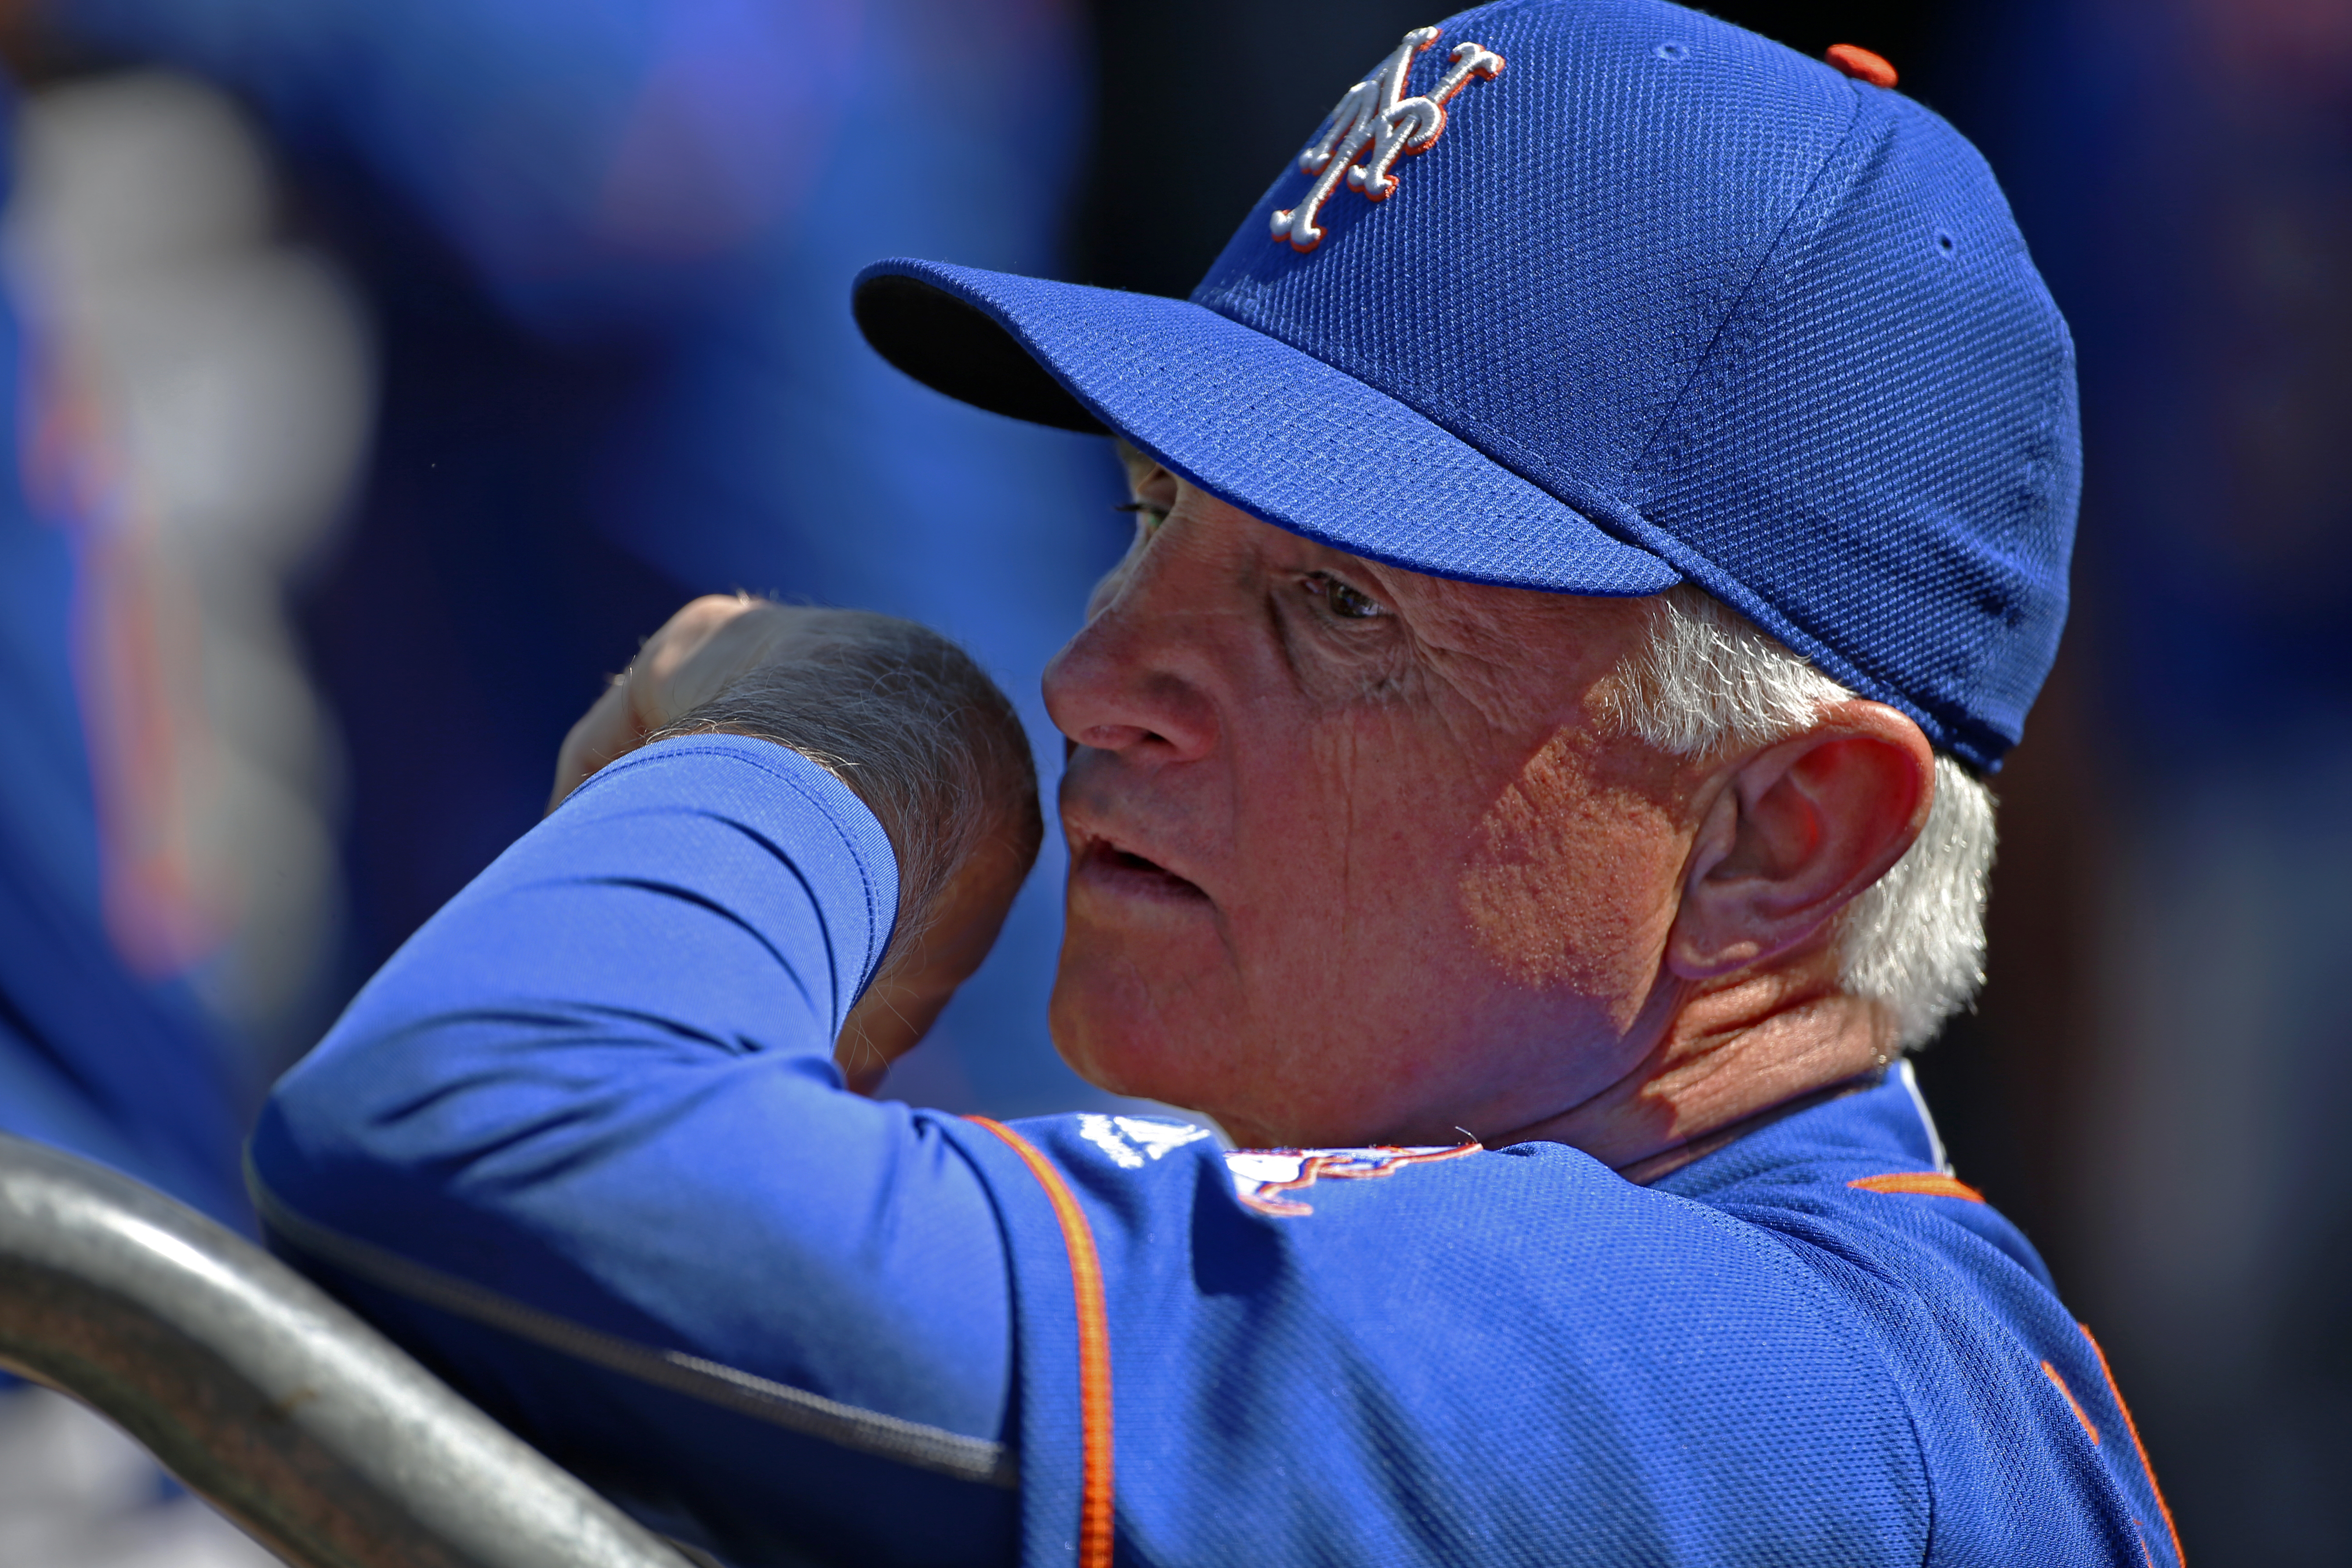 New York Mets manager Terry Collins stands in the dugout before a baseball game against the Pittsburgh Pirates in Pittsburgh, Tuesday, June 7, 2016. The Pirates won the first game of a double header, 3-1. (AP Photo/Gene J. Puskar)